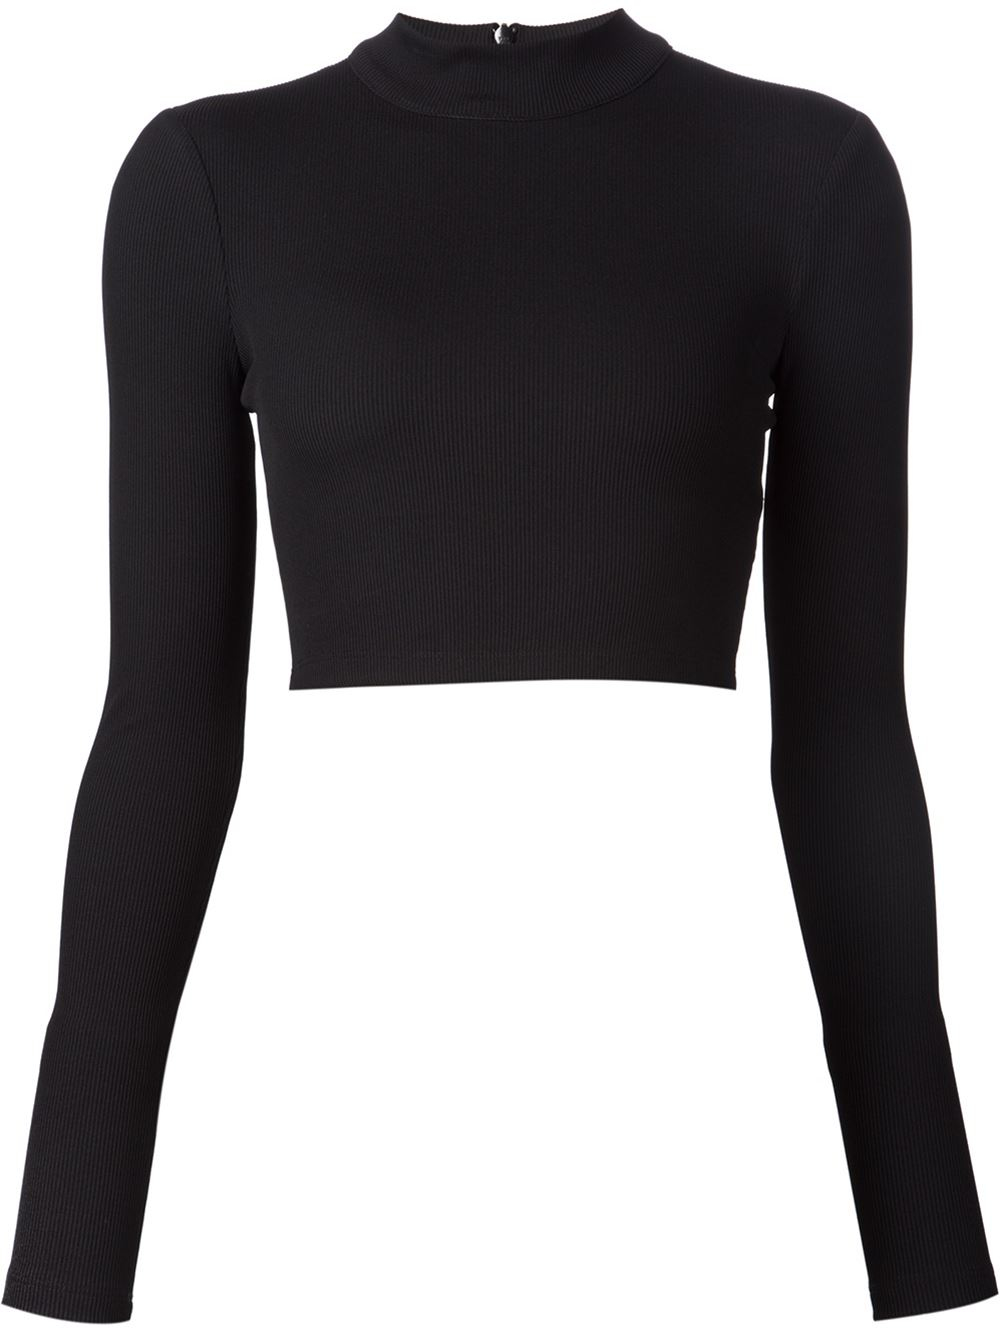 Tanya taylor Cropped Ribbed Sweater in Black | Lyst